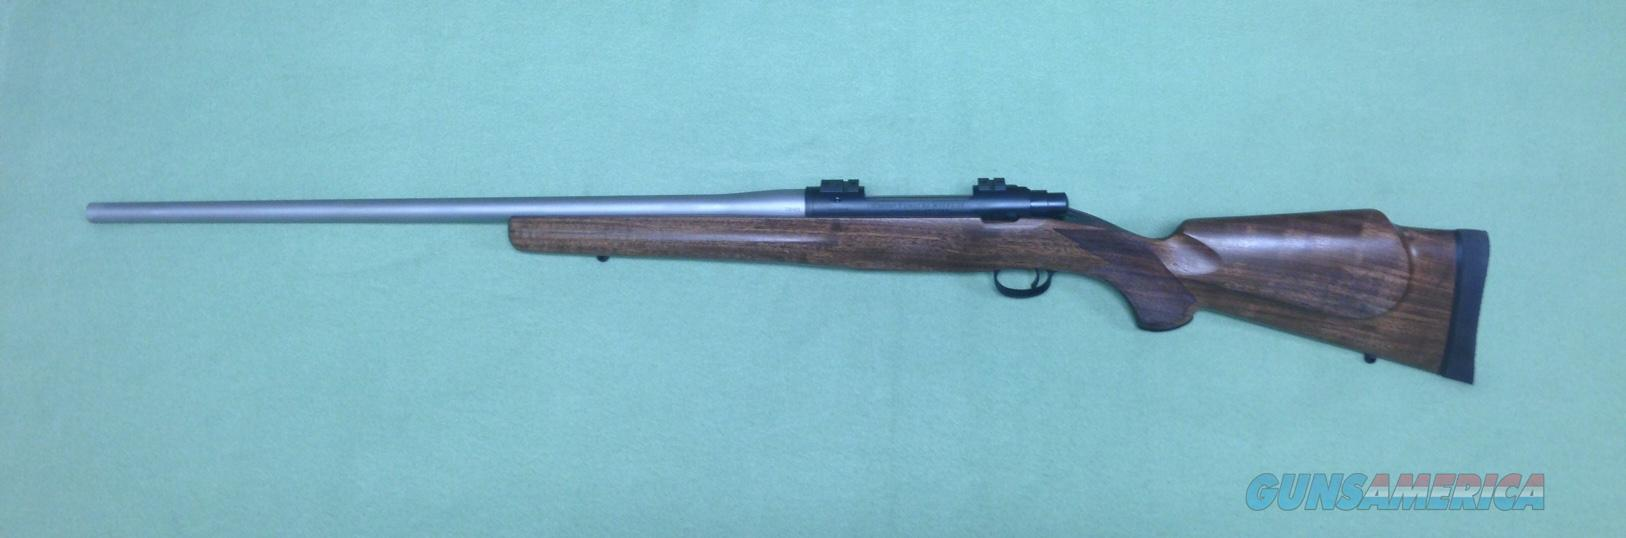 Cooper Arms Model 52 Jackson Game 30-06 Spring.   Guns > Rifles > Cooper Arms Rifles